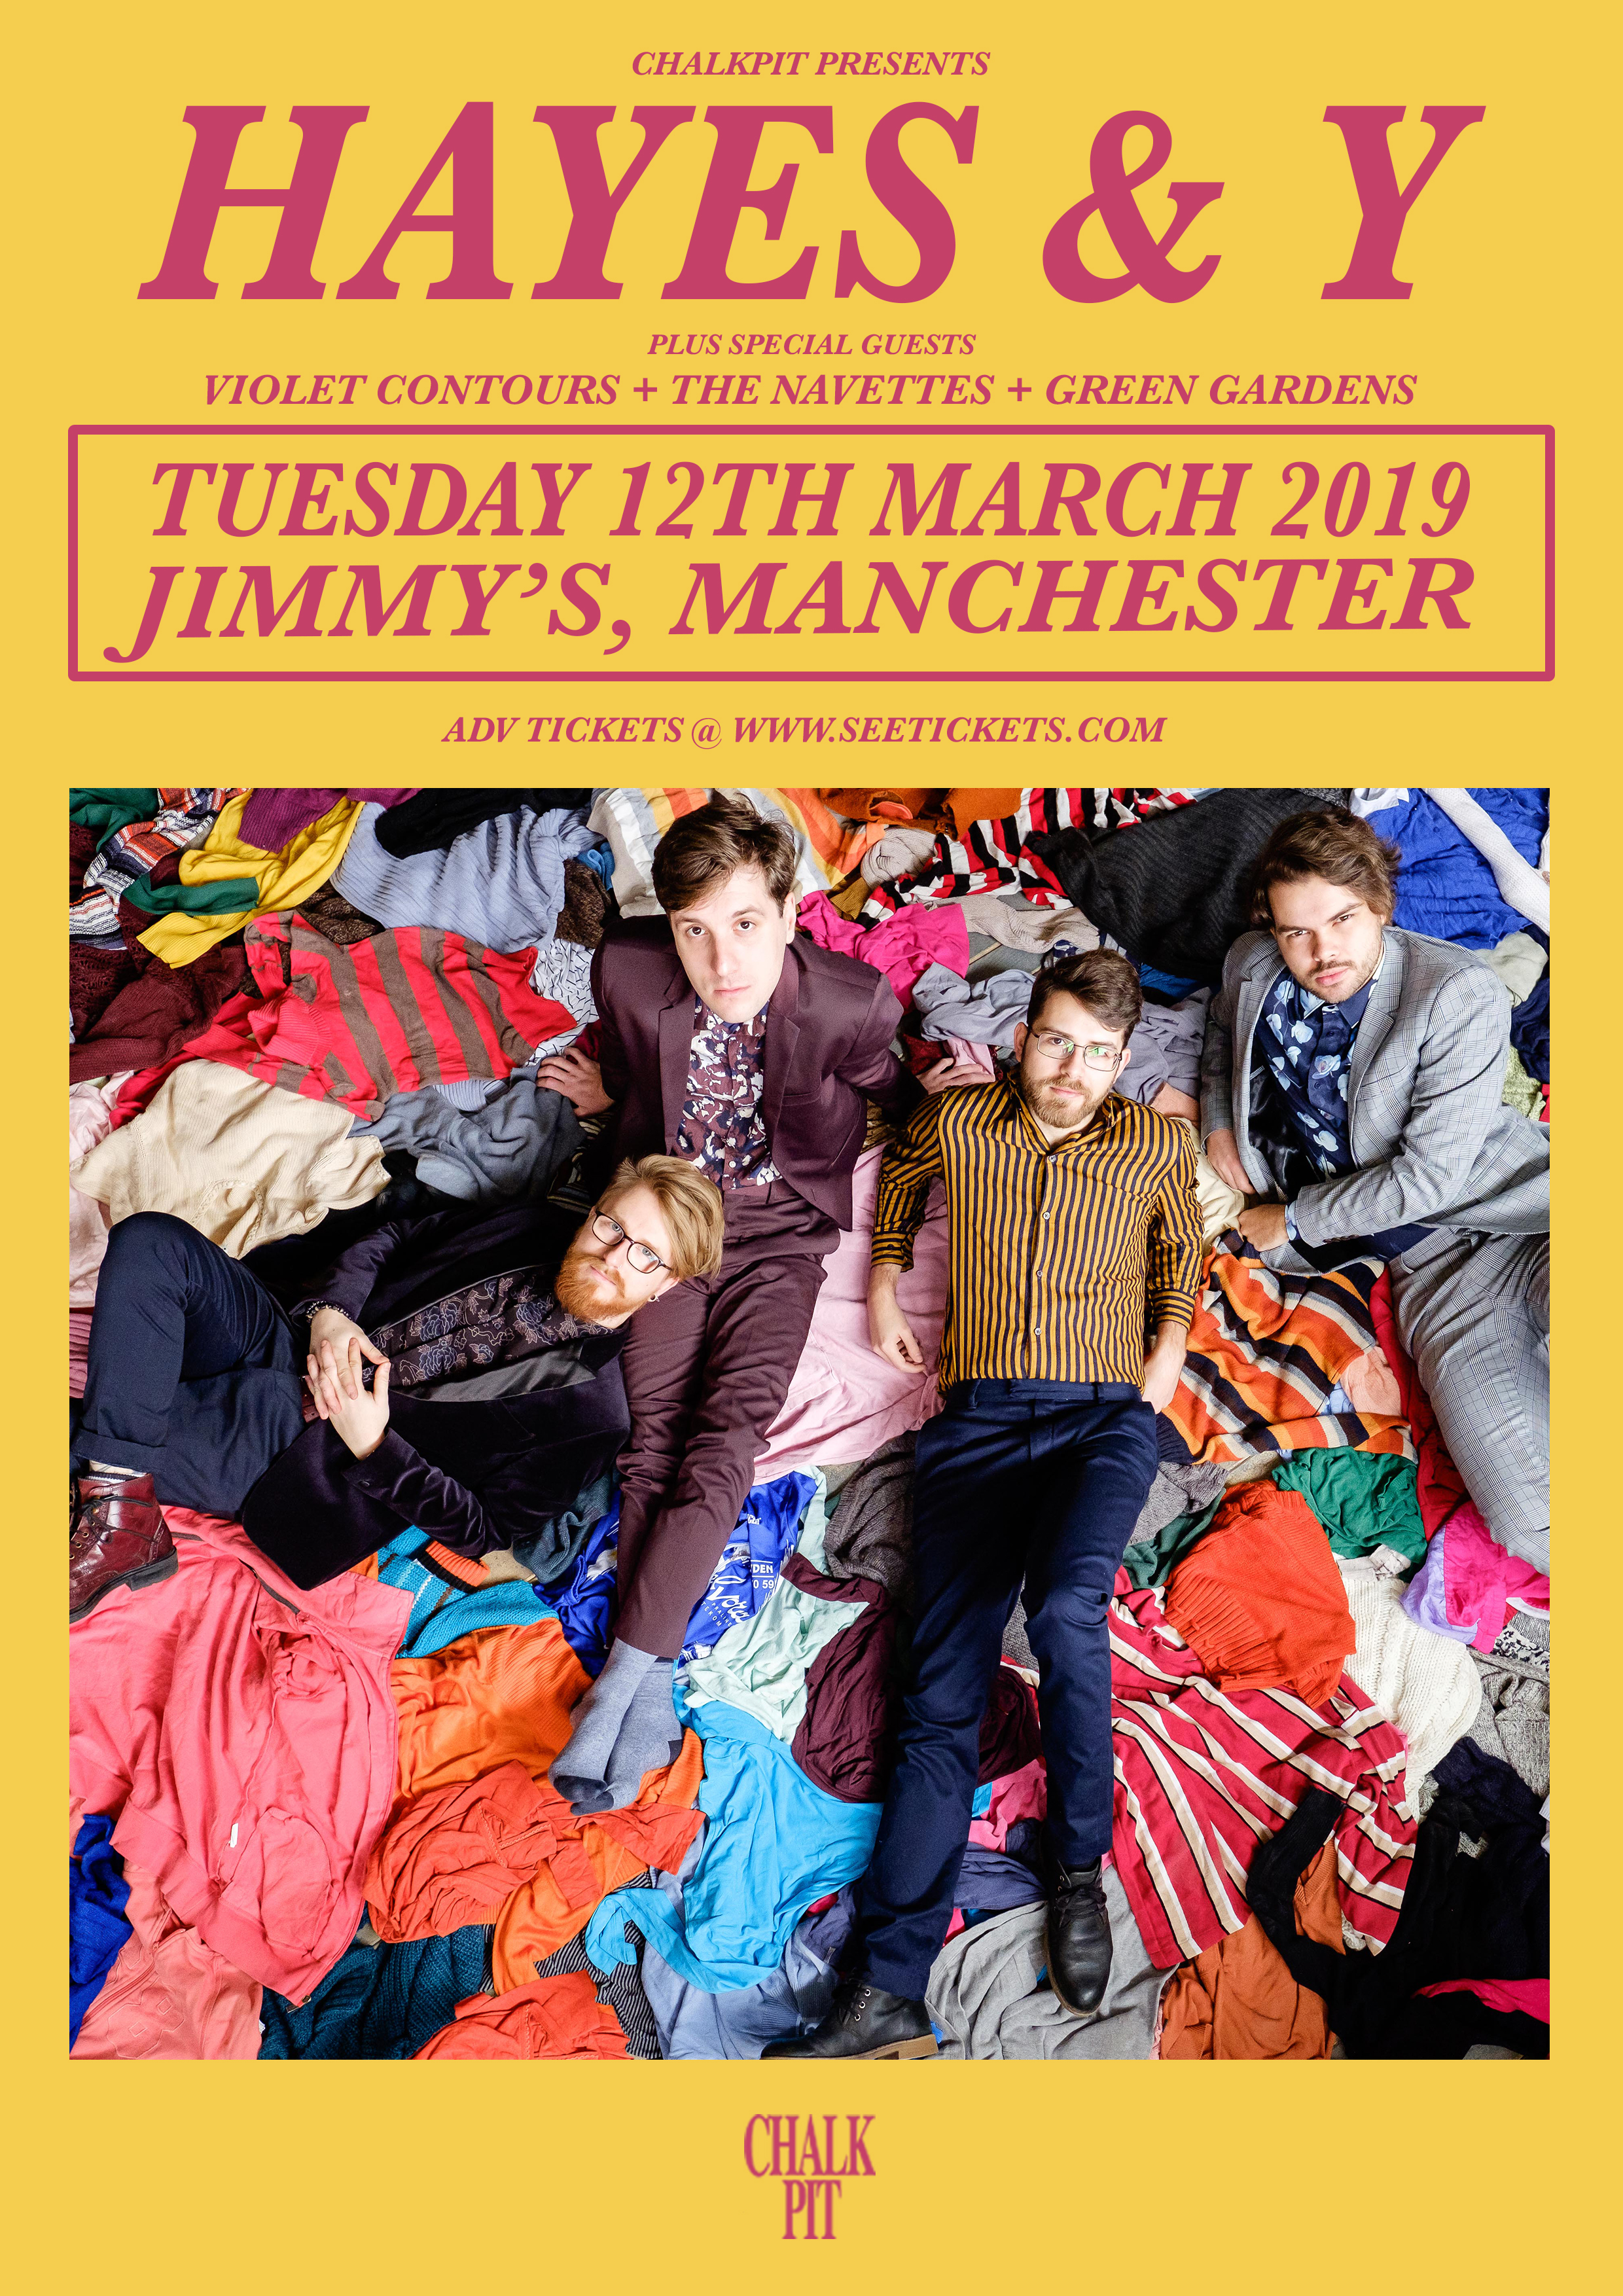 Hayes & Y Live at Jimmy's, Manchester